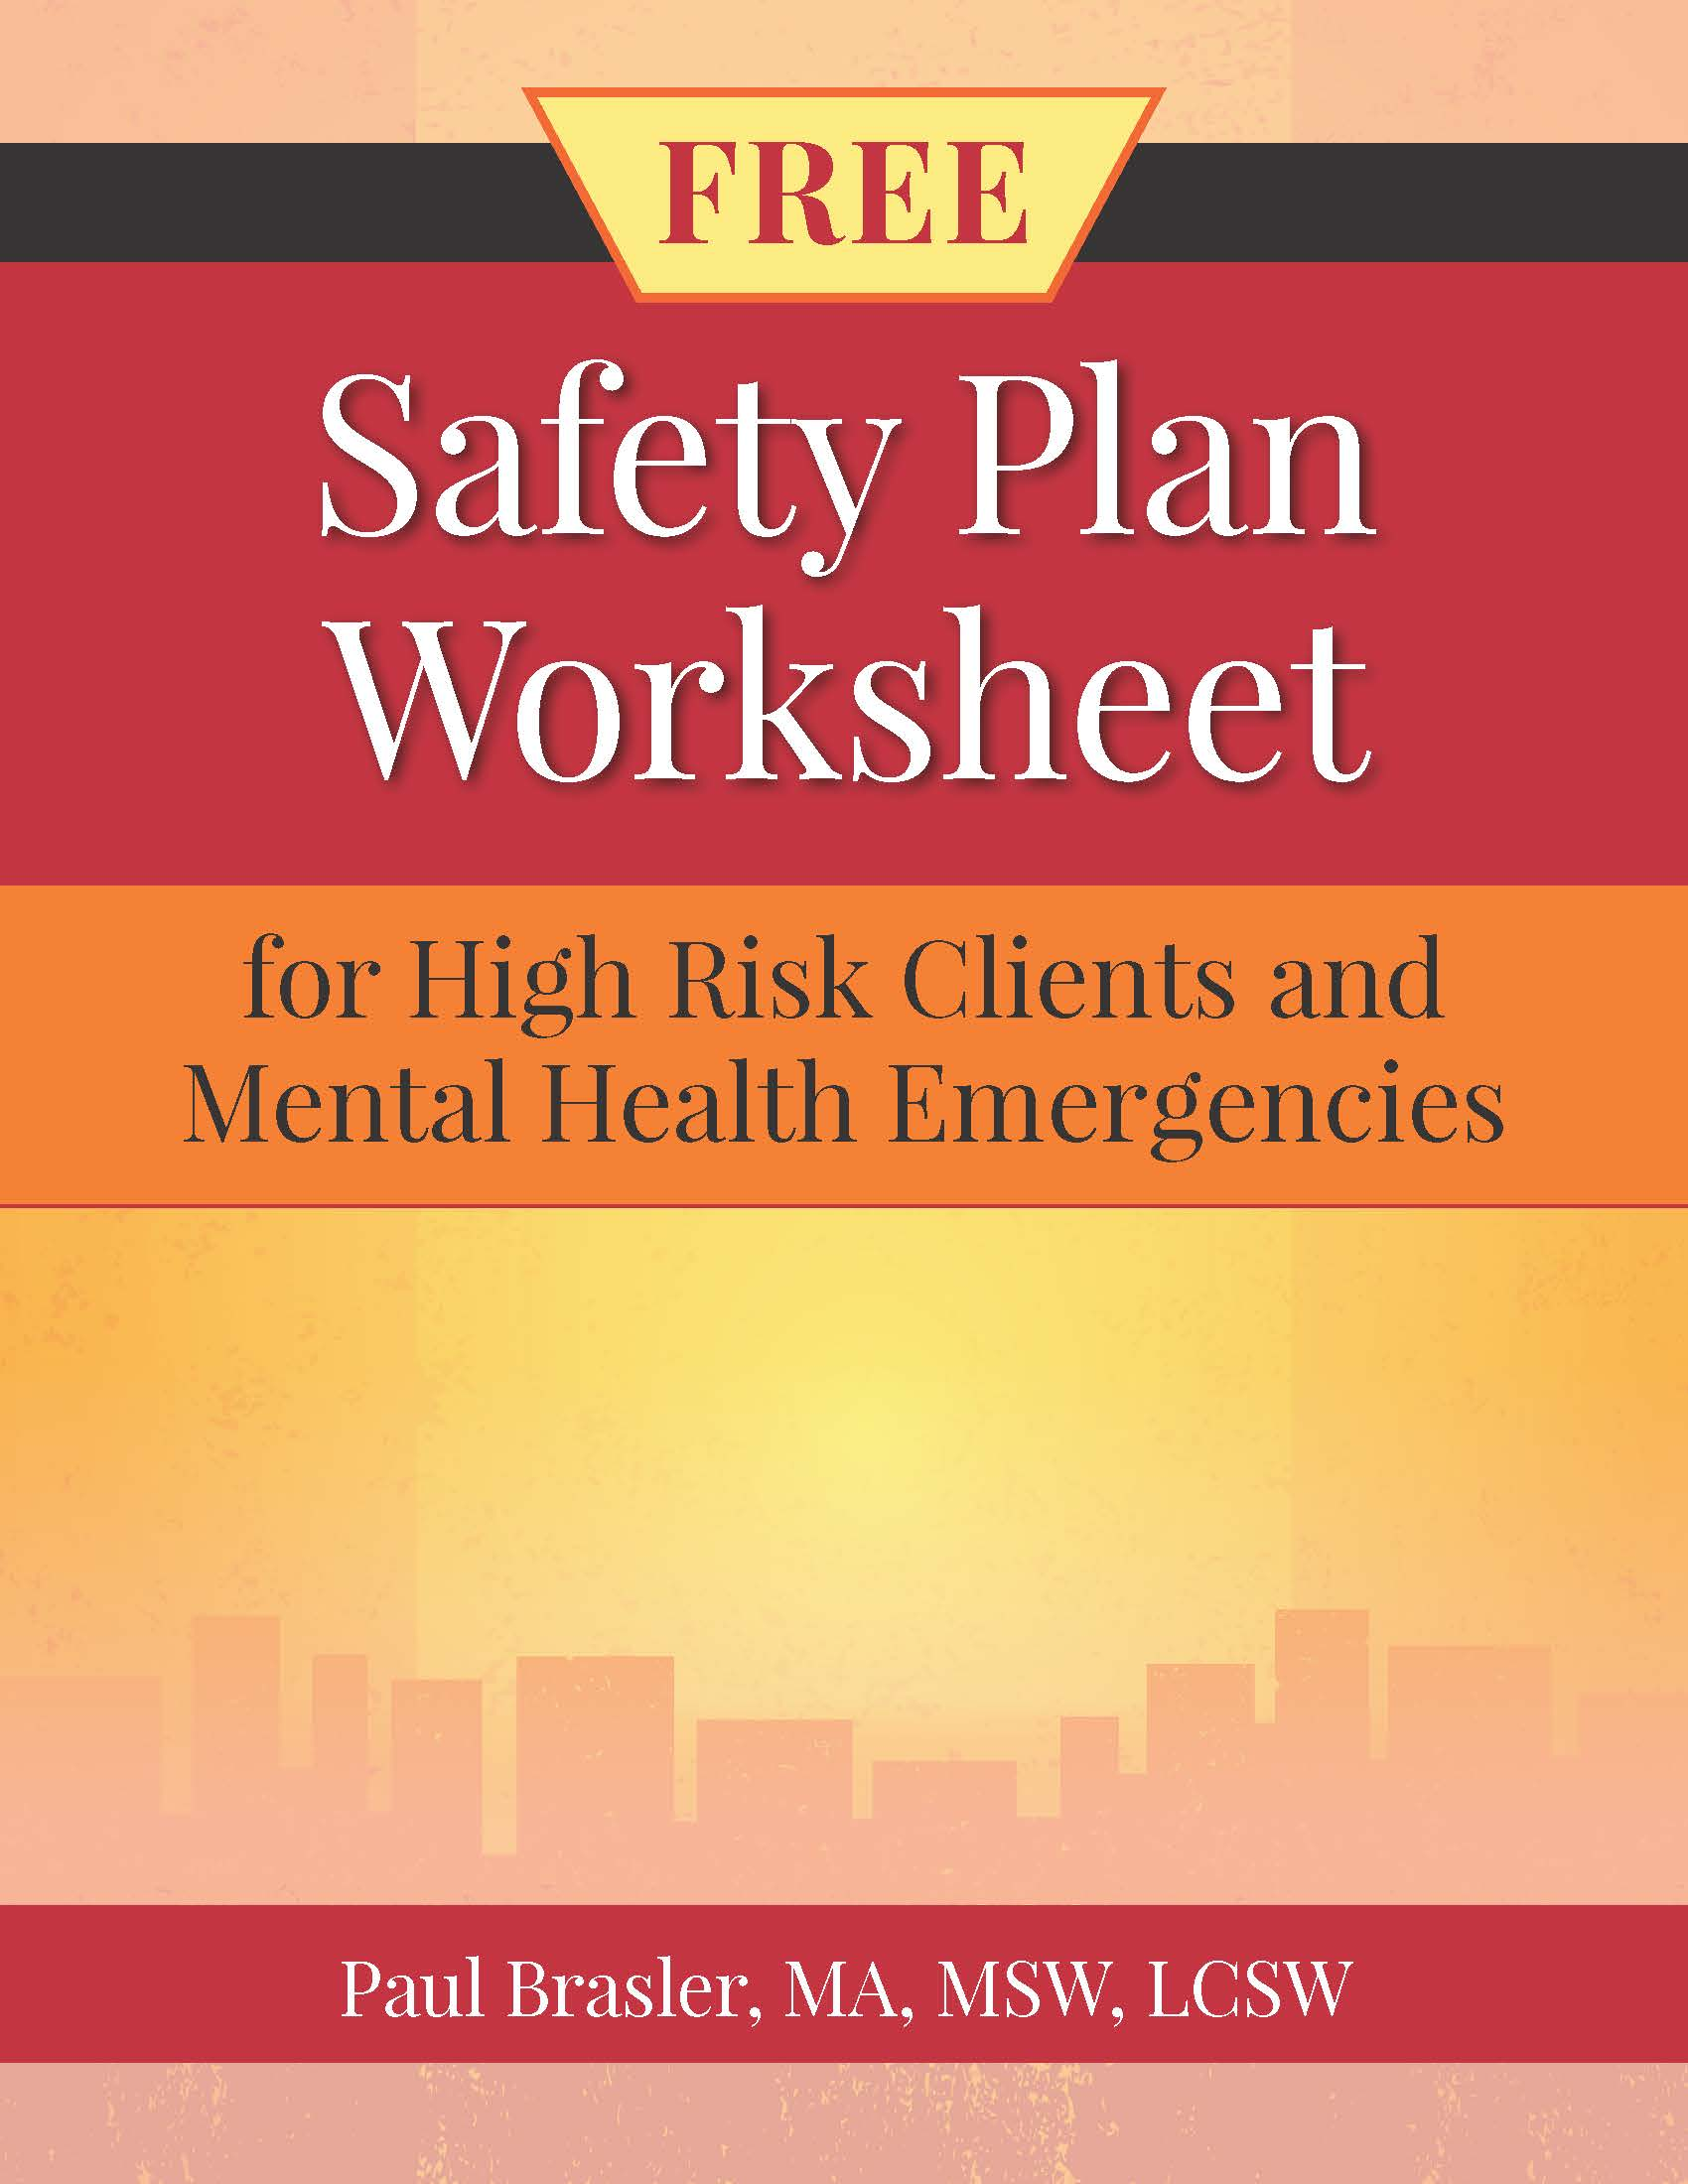 Safety Plan Worksheet Cover